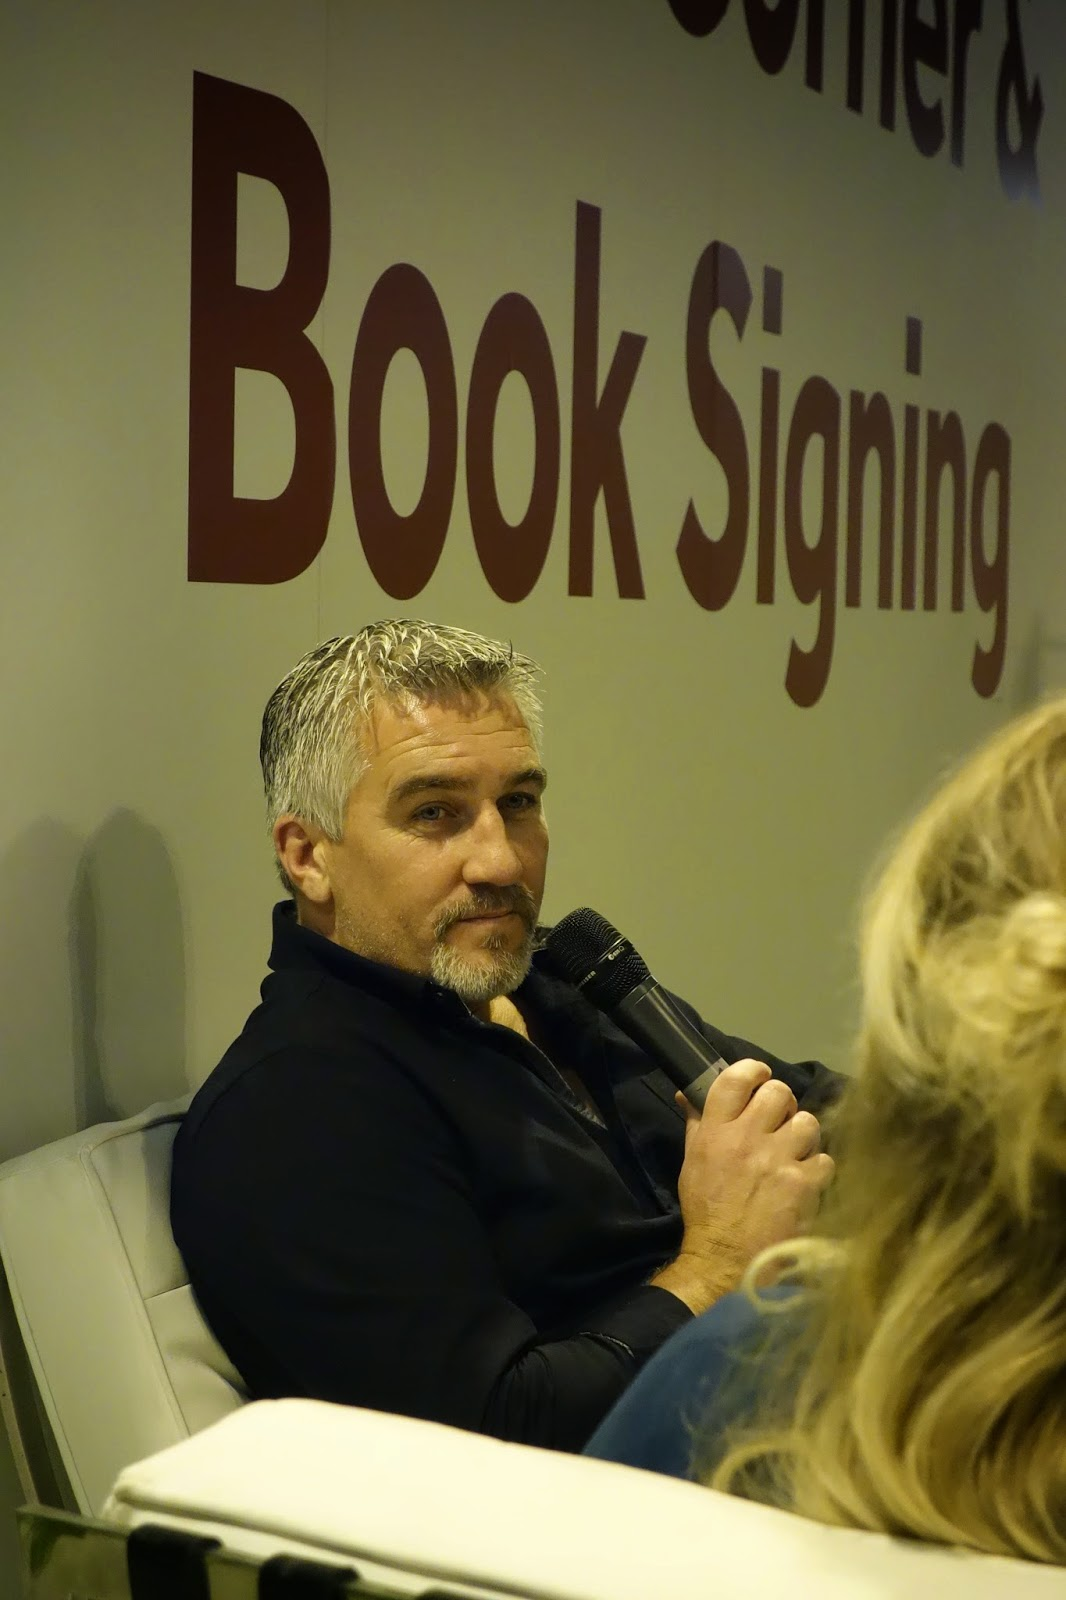 Paul Hollywood interview before book signing